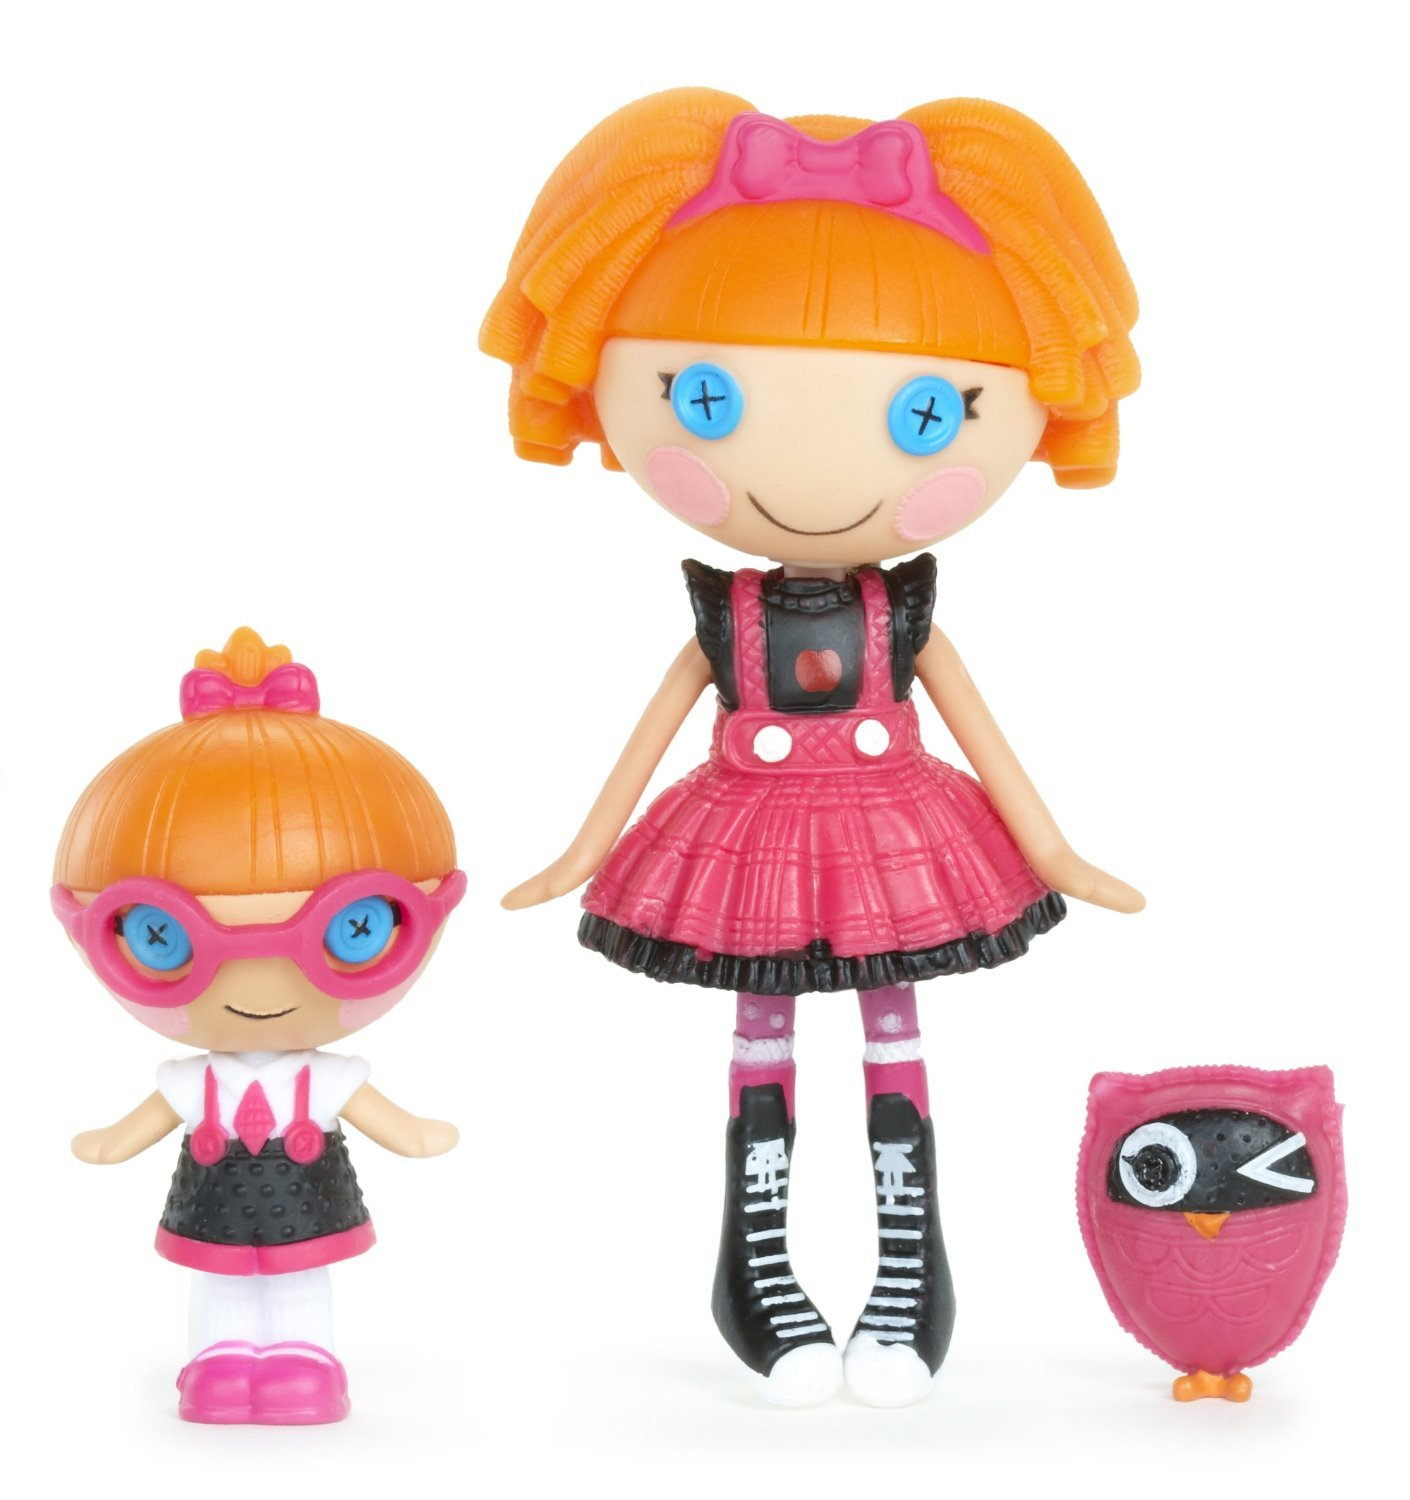 輸入ララループシー人形ドール Doll, Lalaloopsy Mini Littles Lalaloopsy Doll, Bea Spells-A-Lot/Specs Reads-A-Lot Mini [並行輸入品] B01GFJTU8W, おくすり本舗:b6776dde --- arvoreazul.com.br